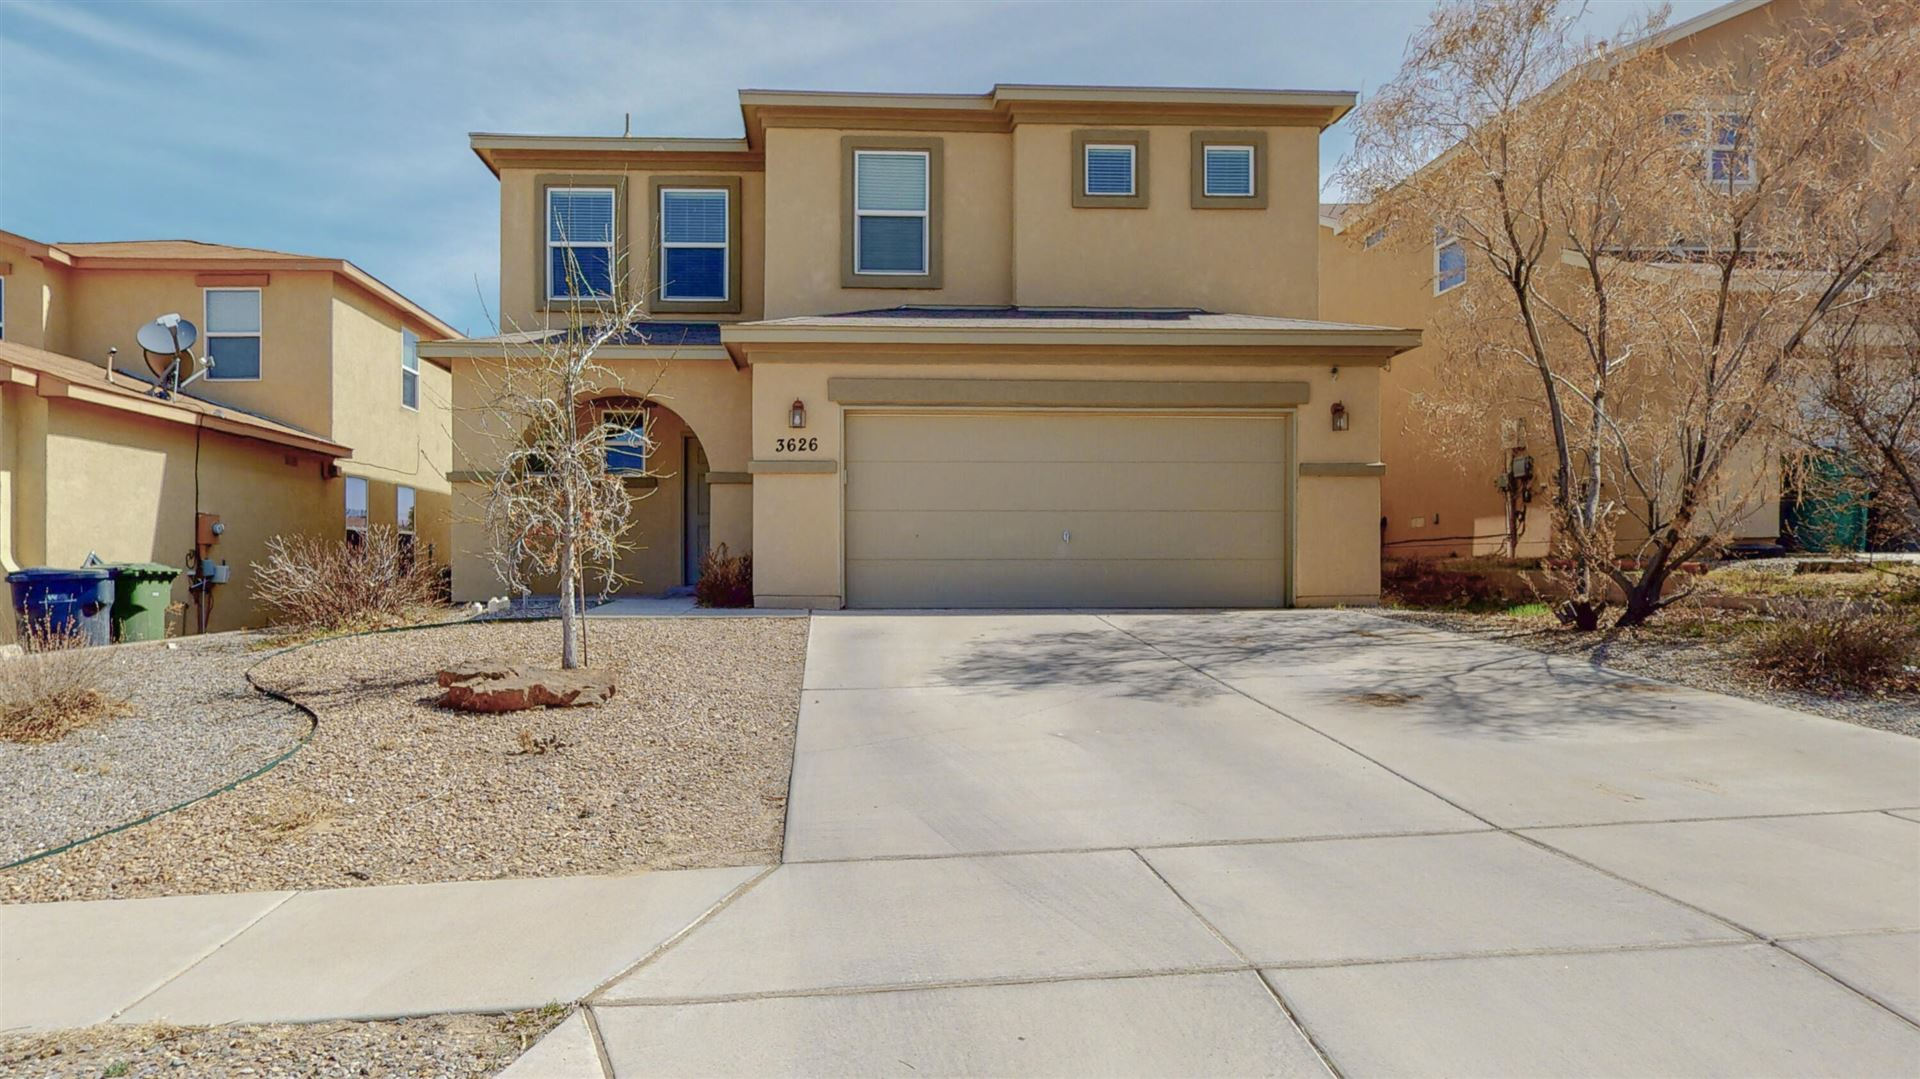 3626 BUCKSKIN Loop NE, Rio Rancho, NM 87144 - MLS#: 988593